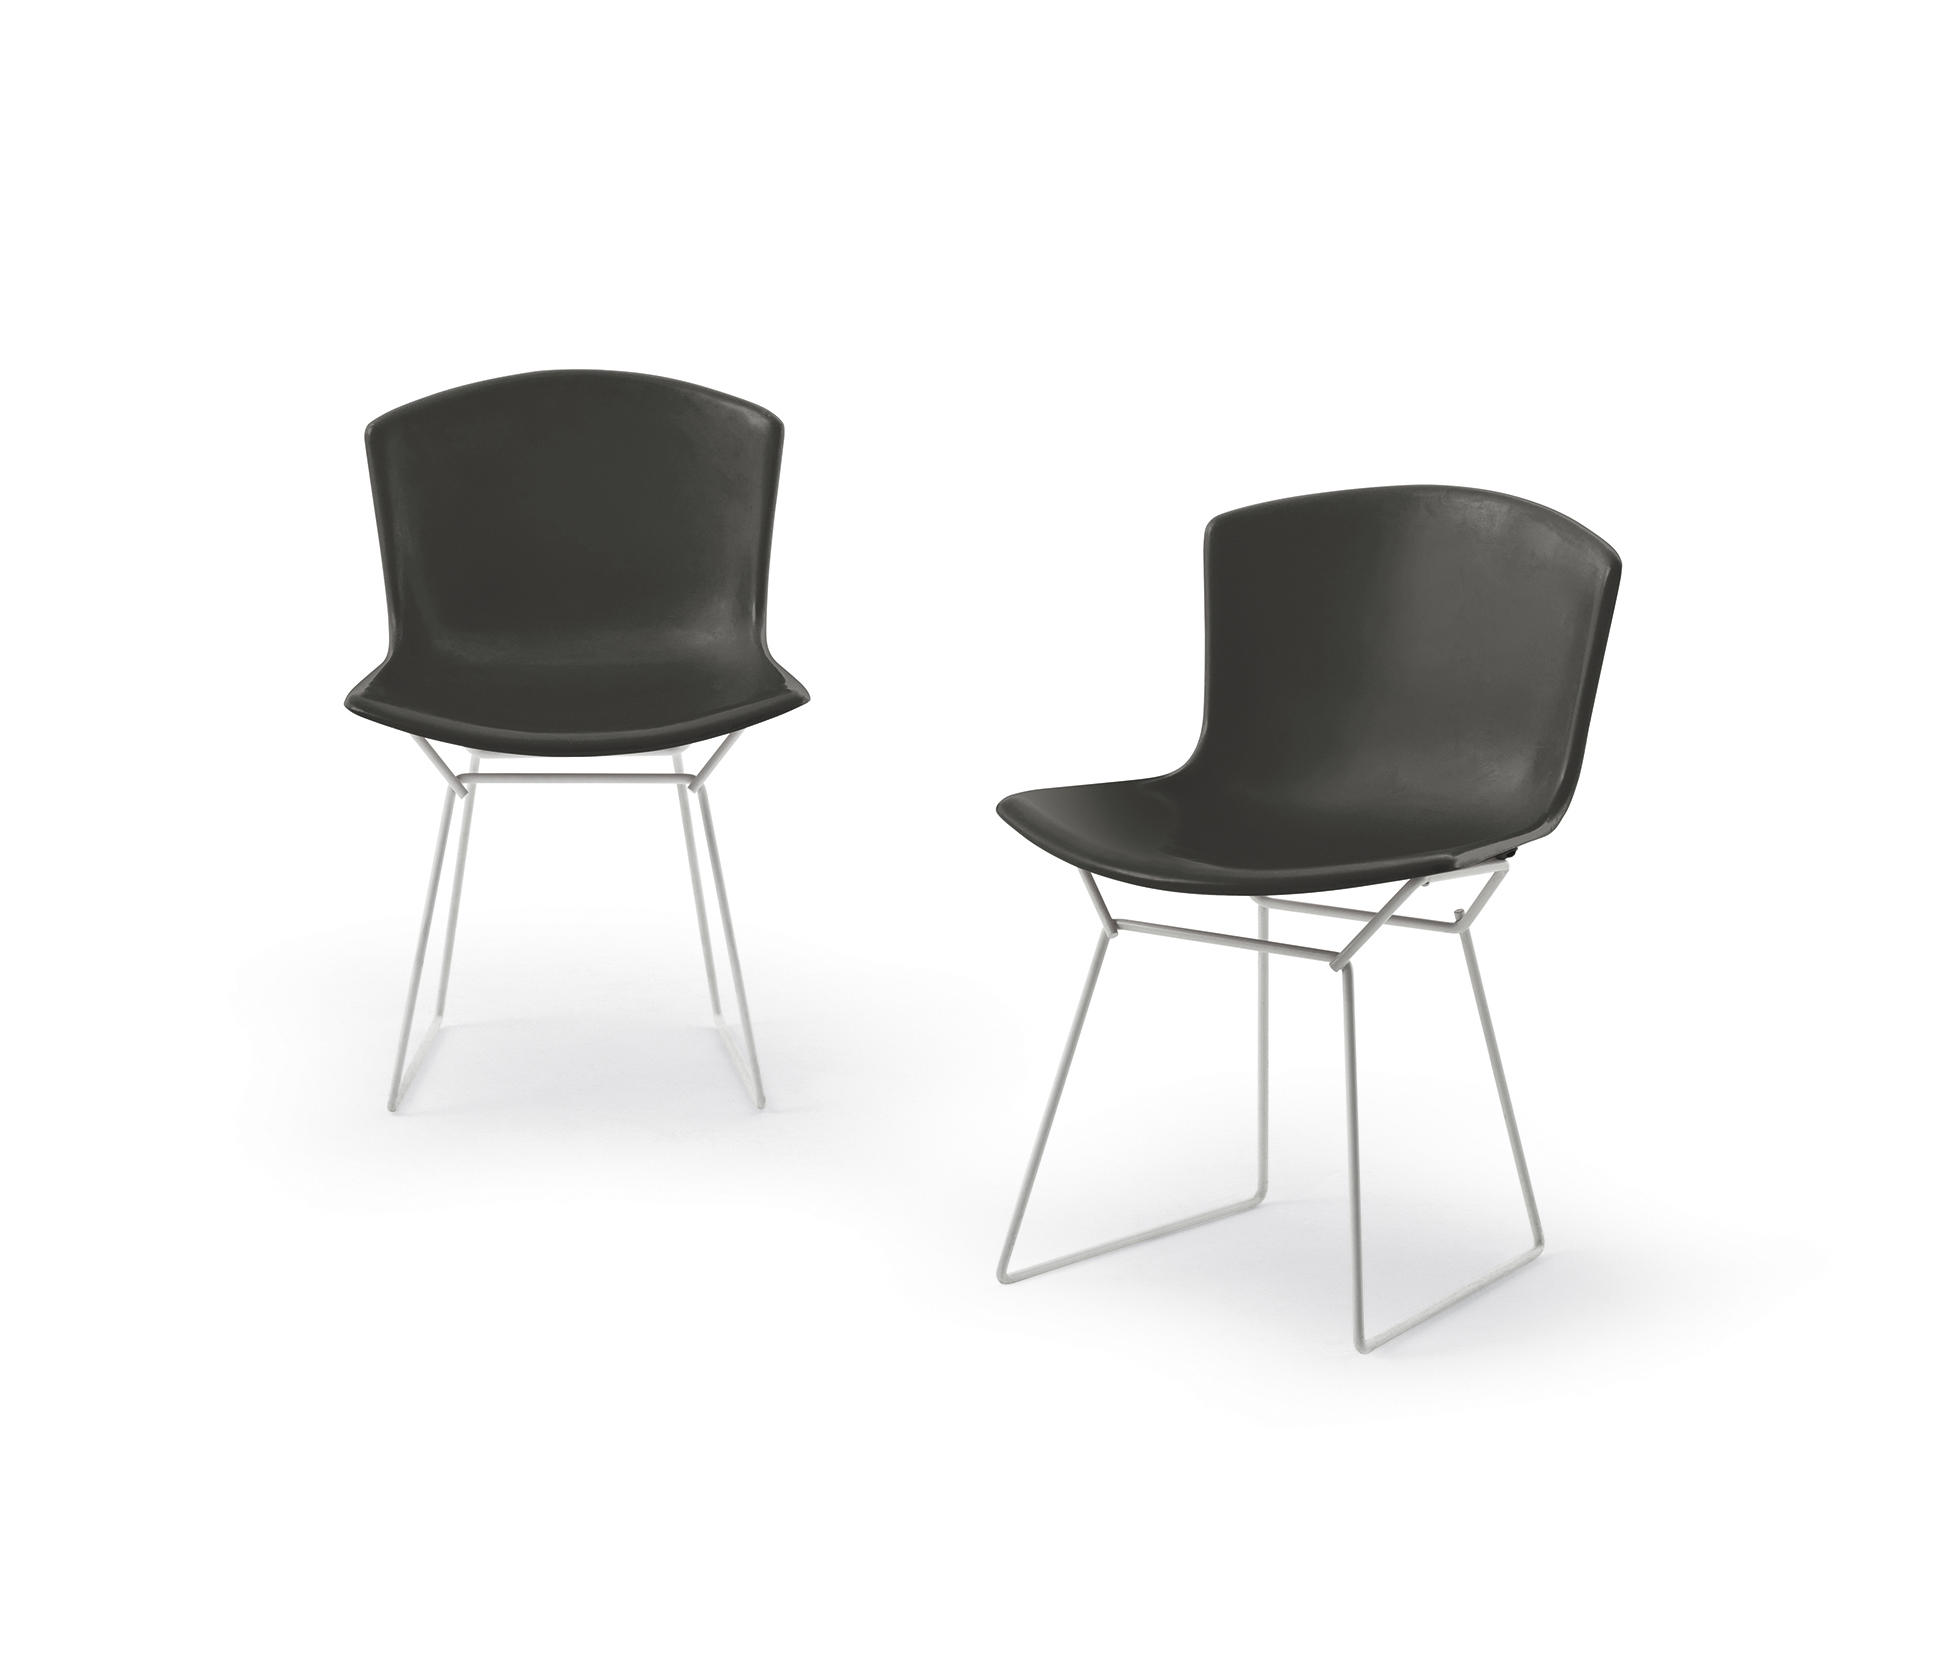 BERTOIA PLASTIC SIDE CHAIR U2013 ANNIVERSARY EDITION   Chairs From Knoll  International | Architonic